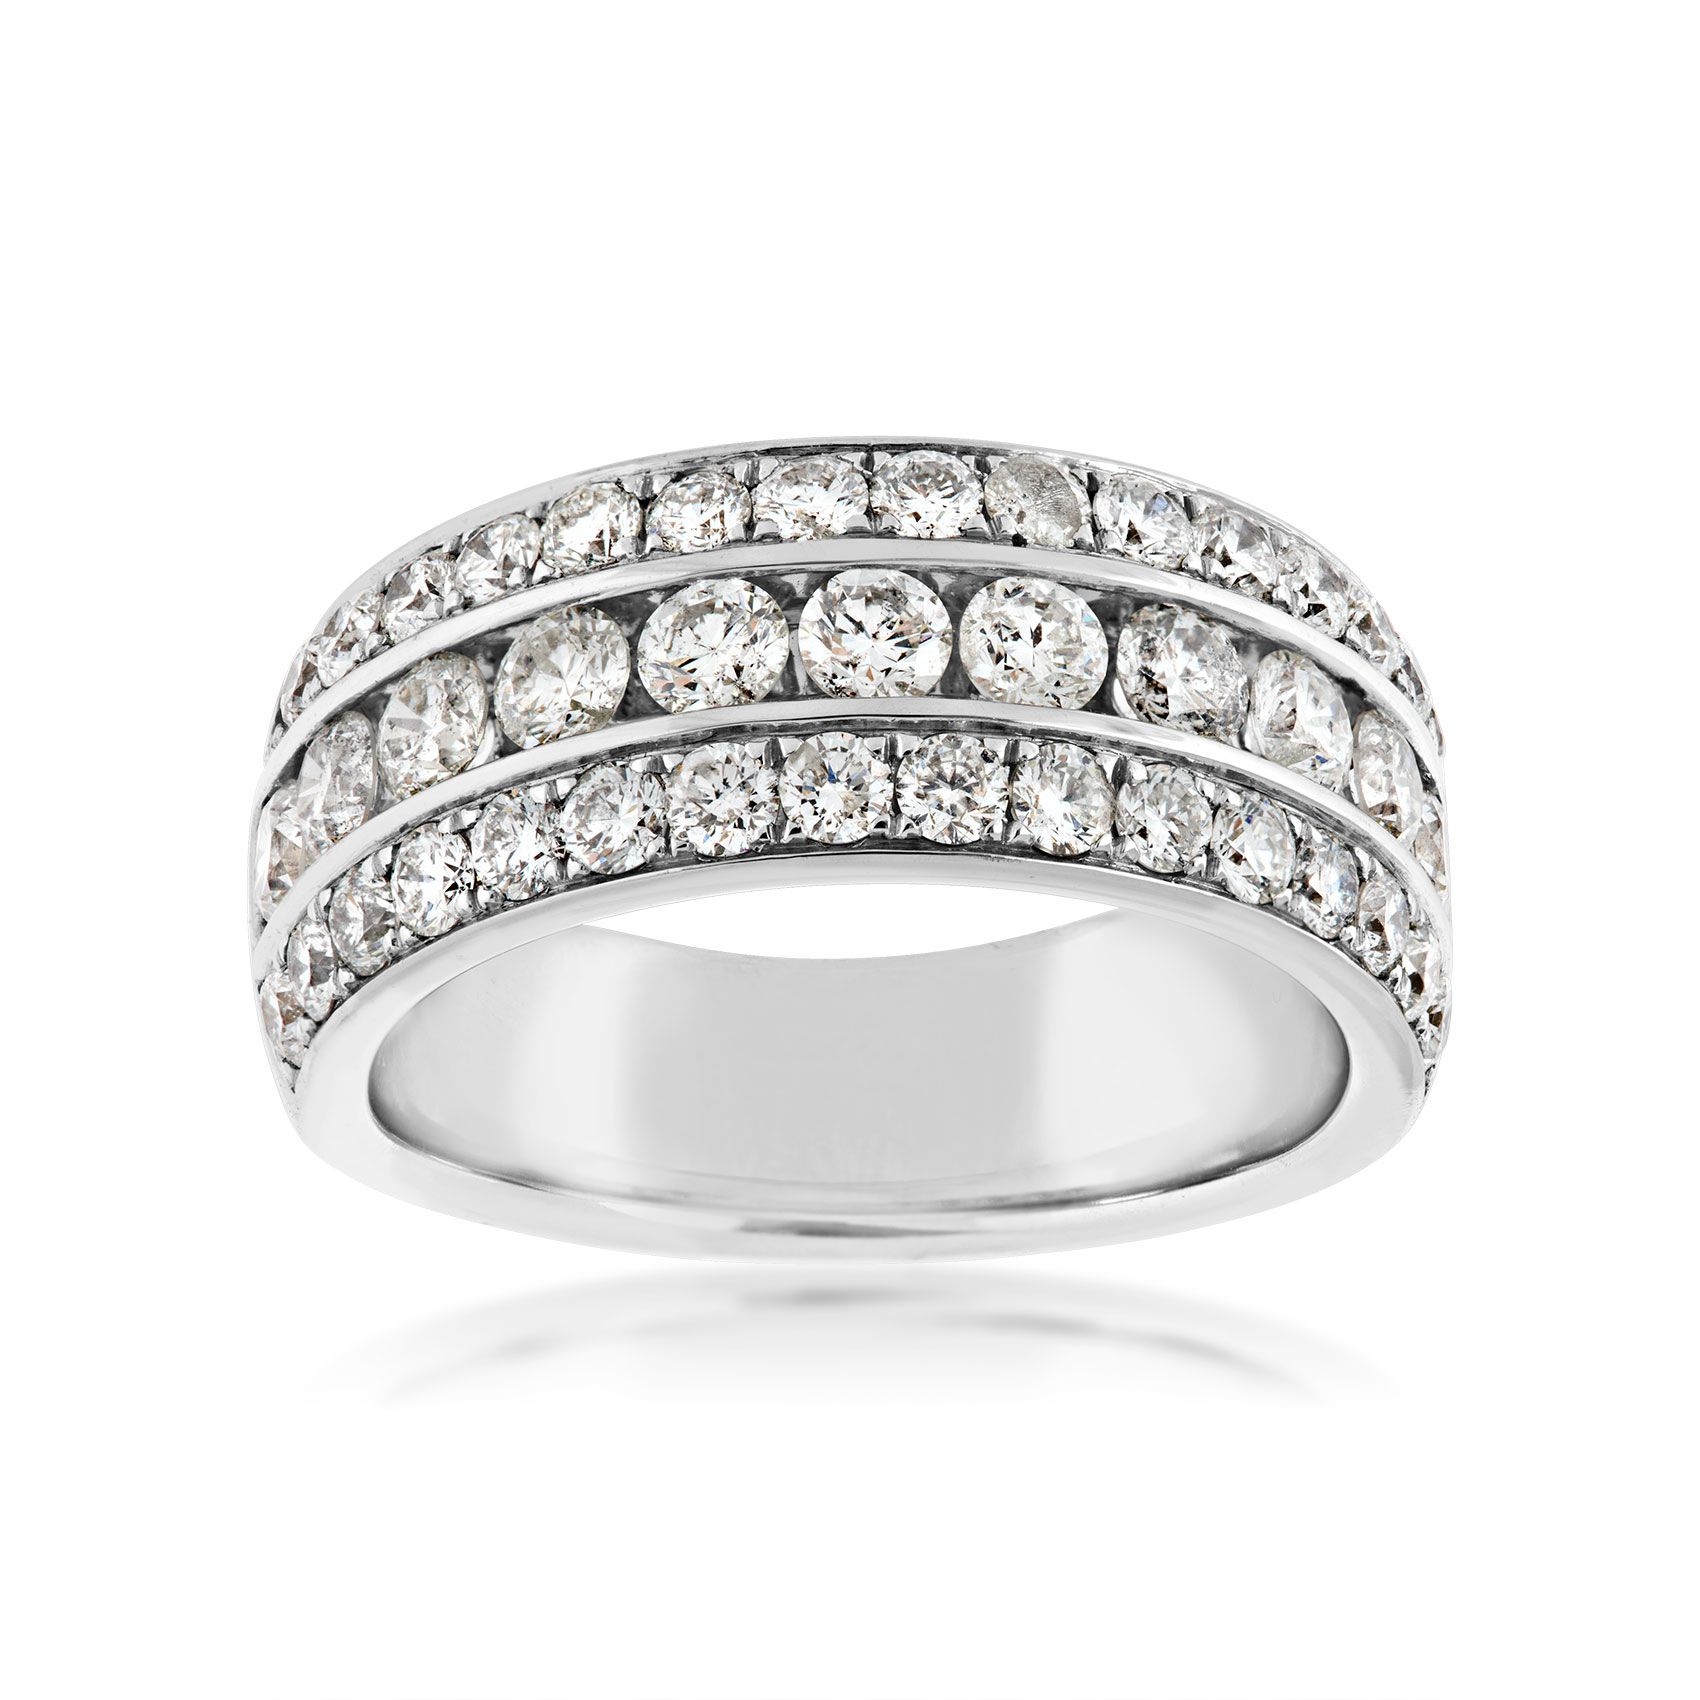 2 Ct. Tw. Diamond 3 Row Anniversary Ring In 14K White Gold – Jm2649 Rg14W070 With Recent Diamond Three Row Anniversary Rings In White Gold (Gallery 11 of 25)